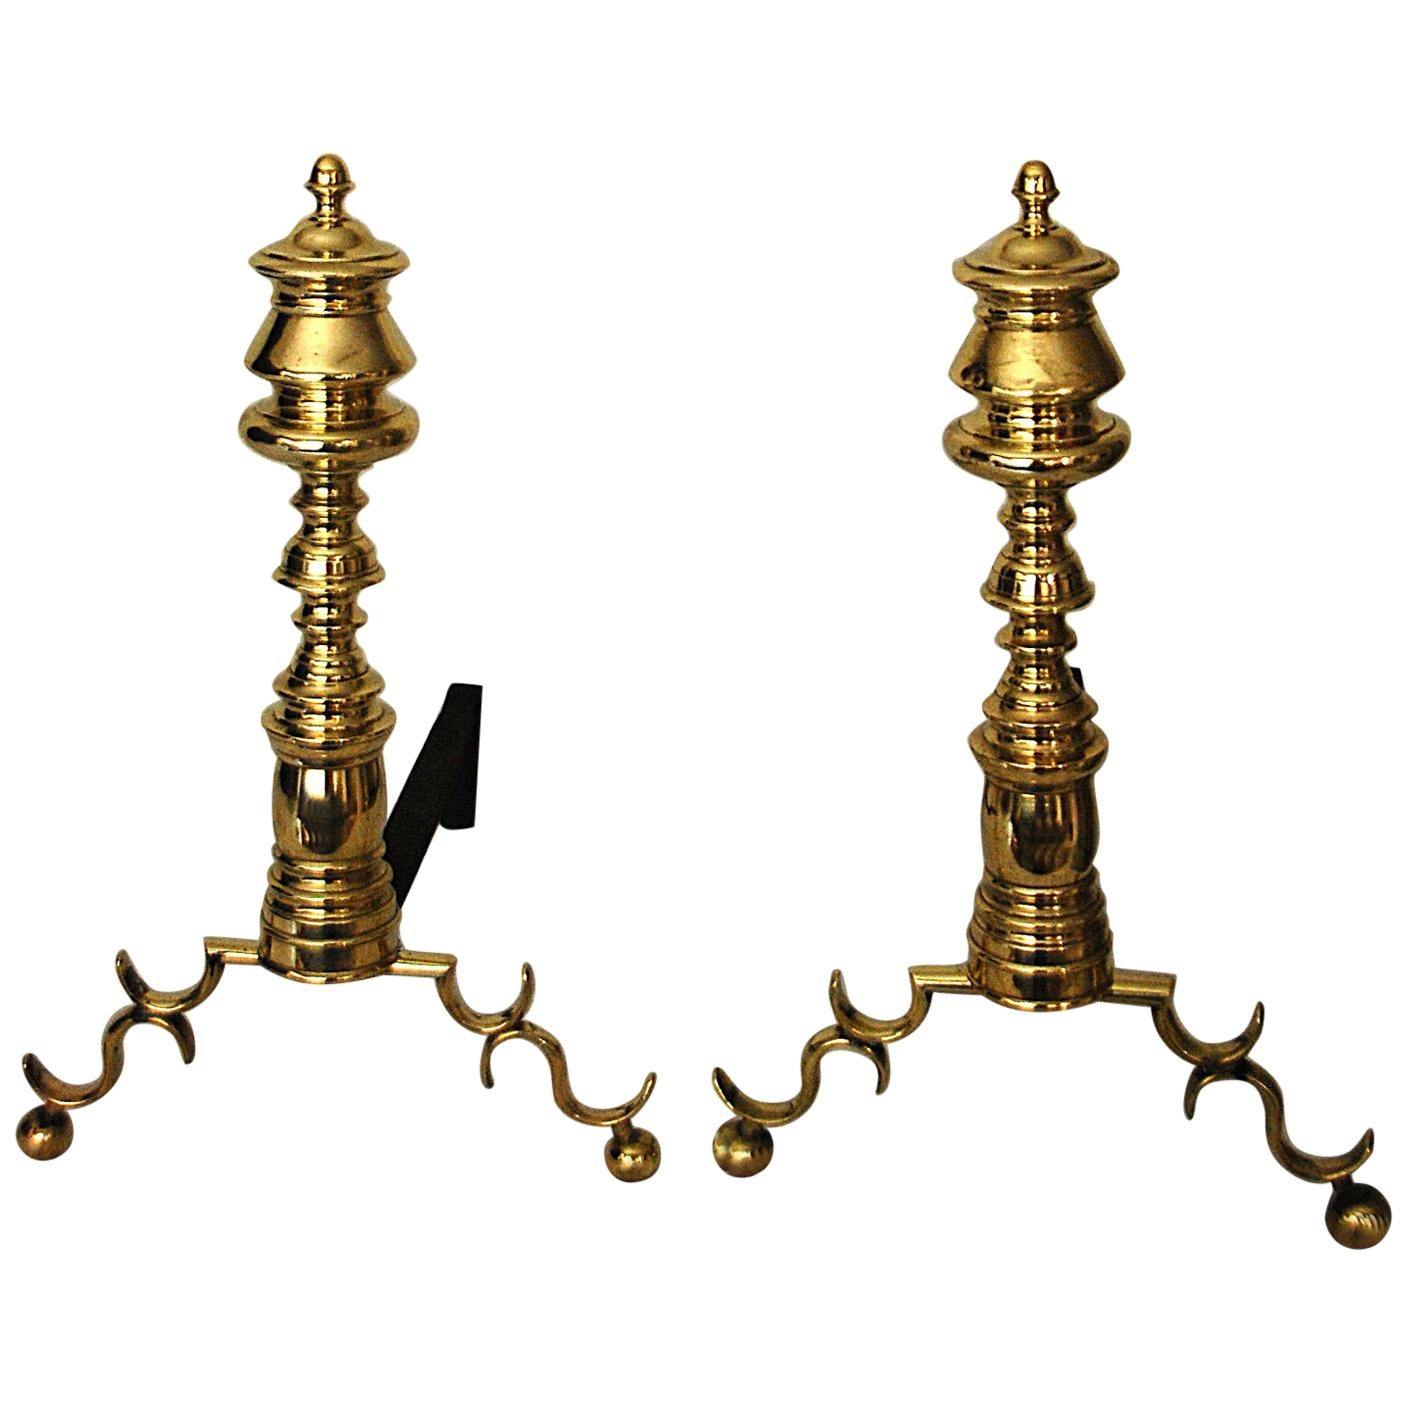 American Empire Period Brass Andirons